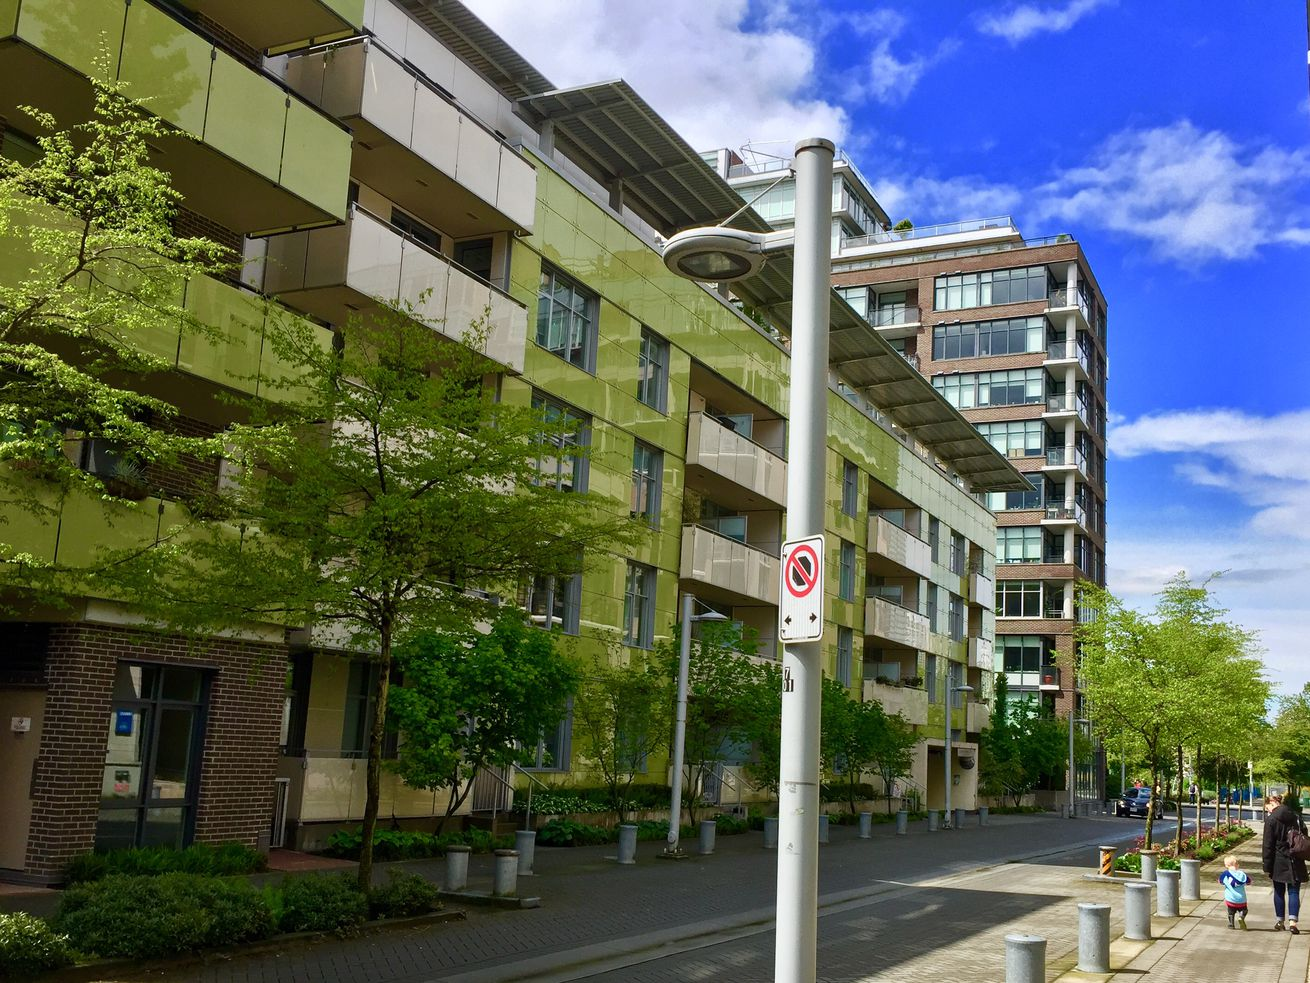 Publicly owned family rental housing in Vancouver's Olympic Village.